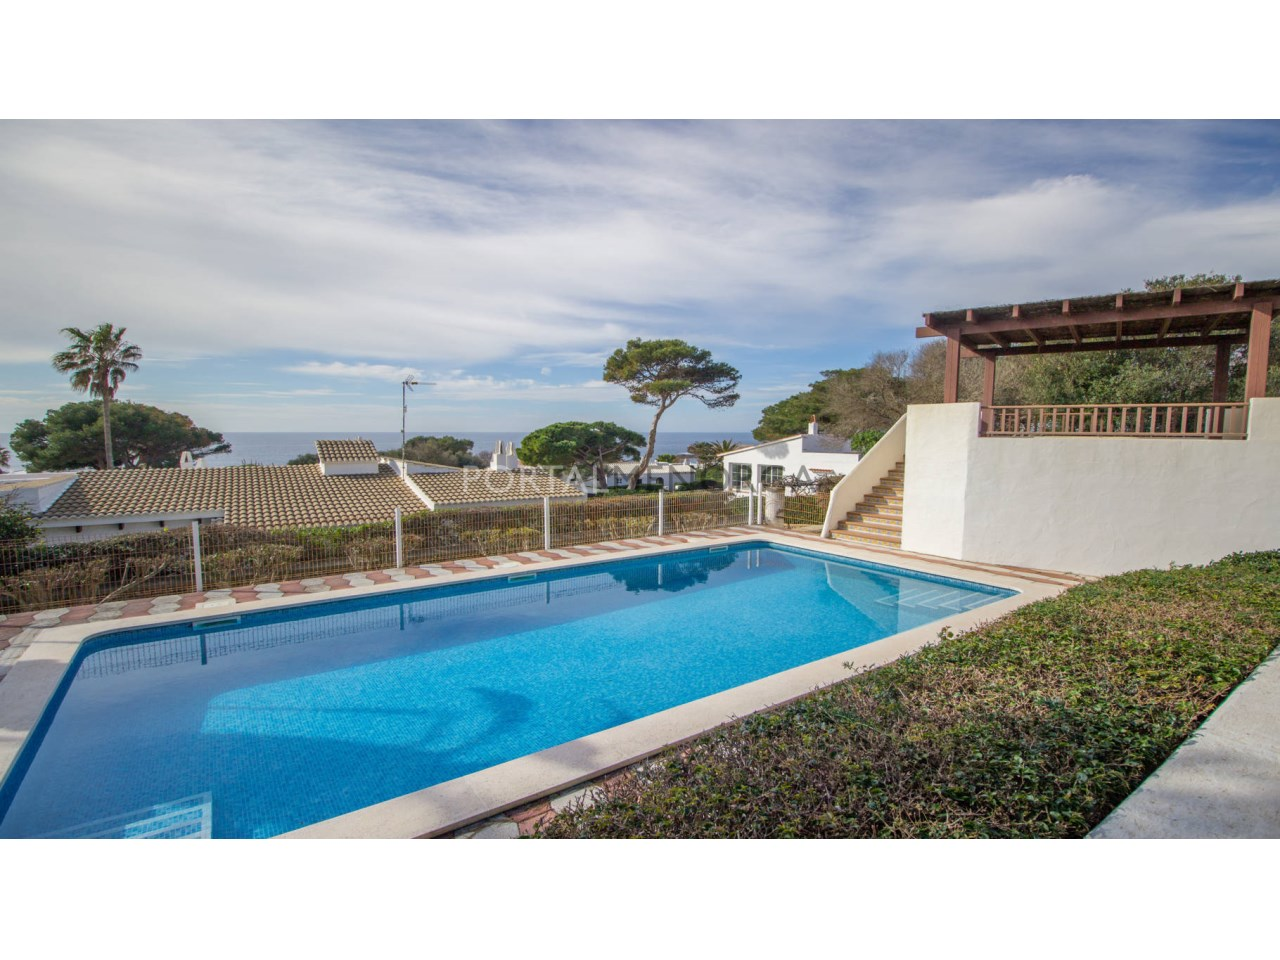 House with pool and sea view for sale in Binibeca